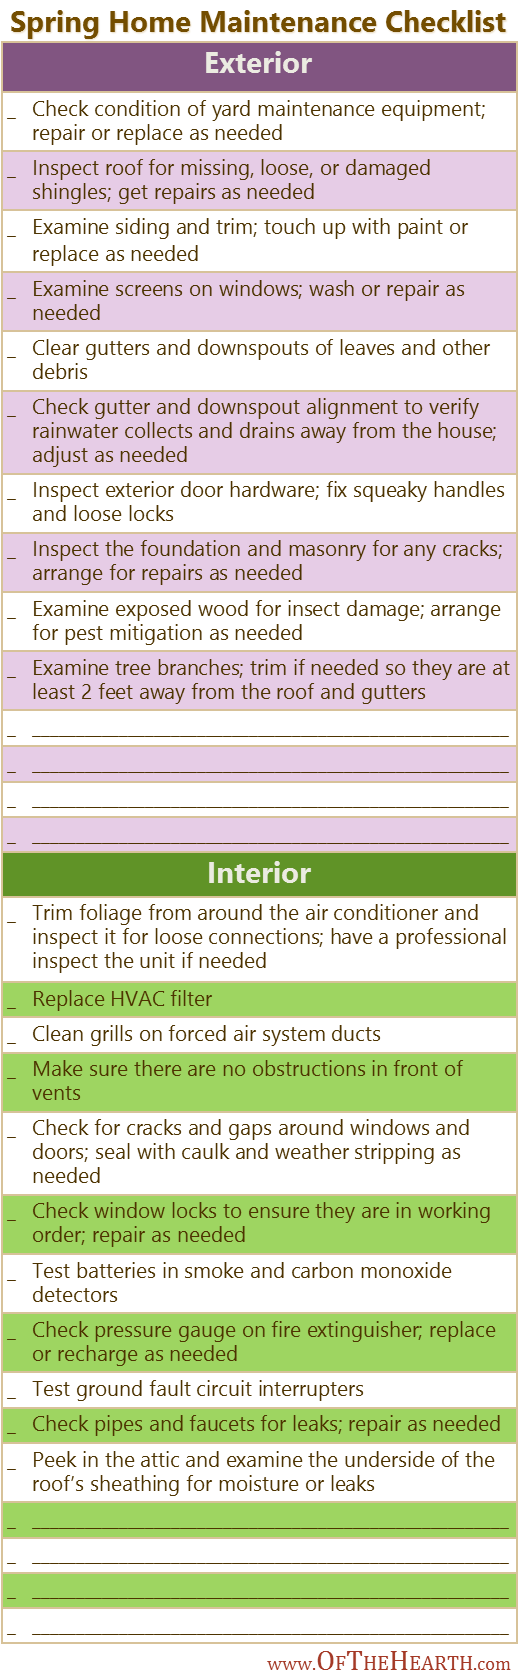 Spring Home Maintenance Checklist | Investing time and effort to maintain your home today will save you expense and inconvenience tomorrow. Here's a checklist of spring home maintenance tasks.